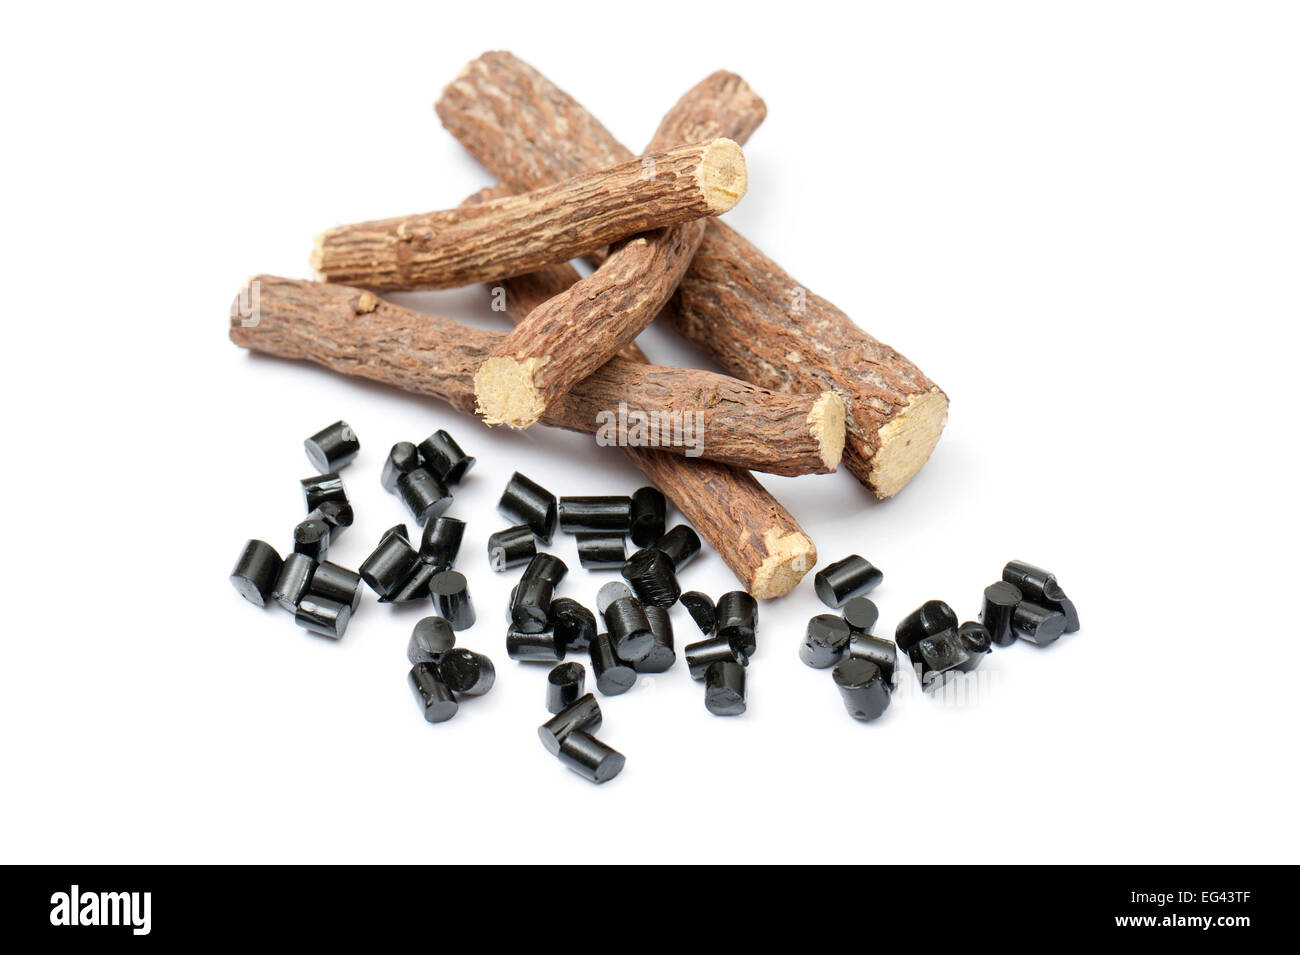 liquorice roots with black pieces, on white background - Stock Image